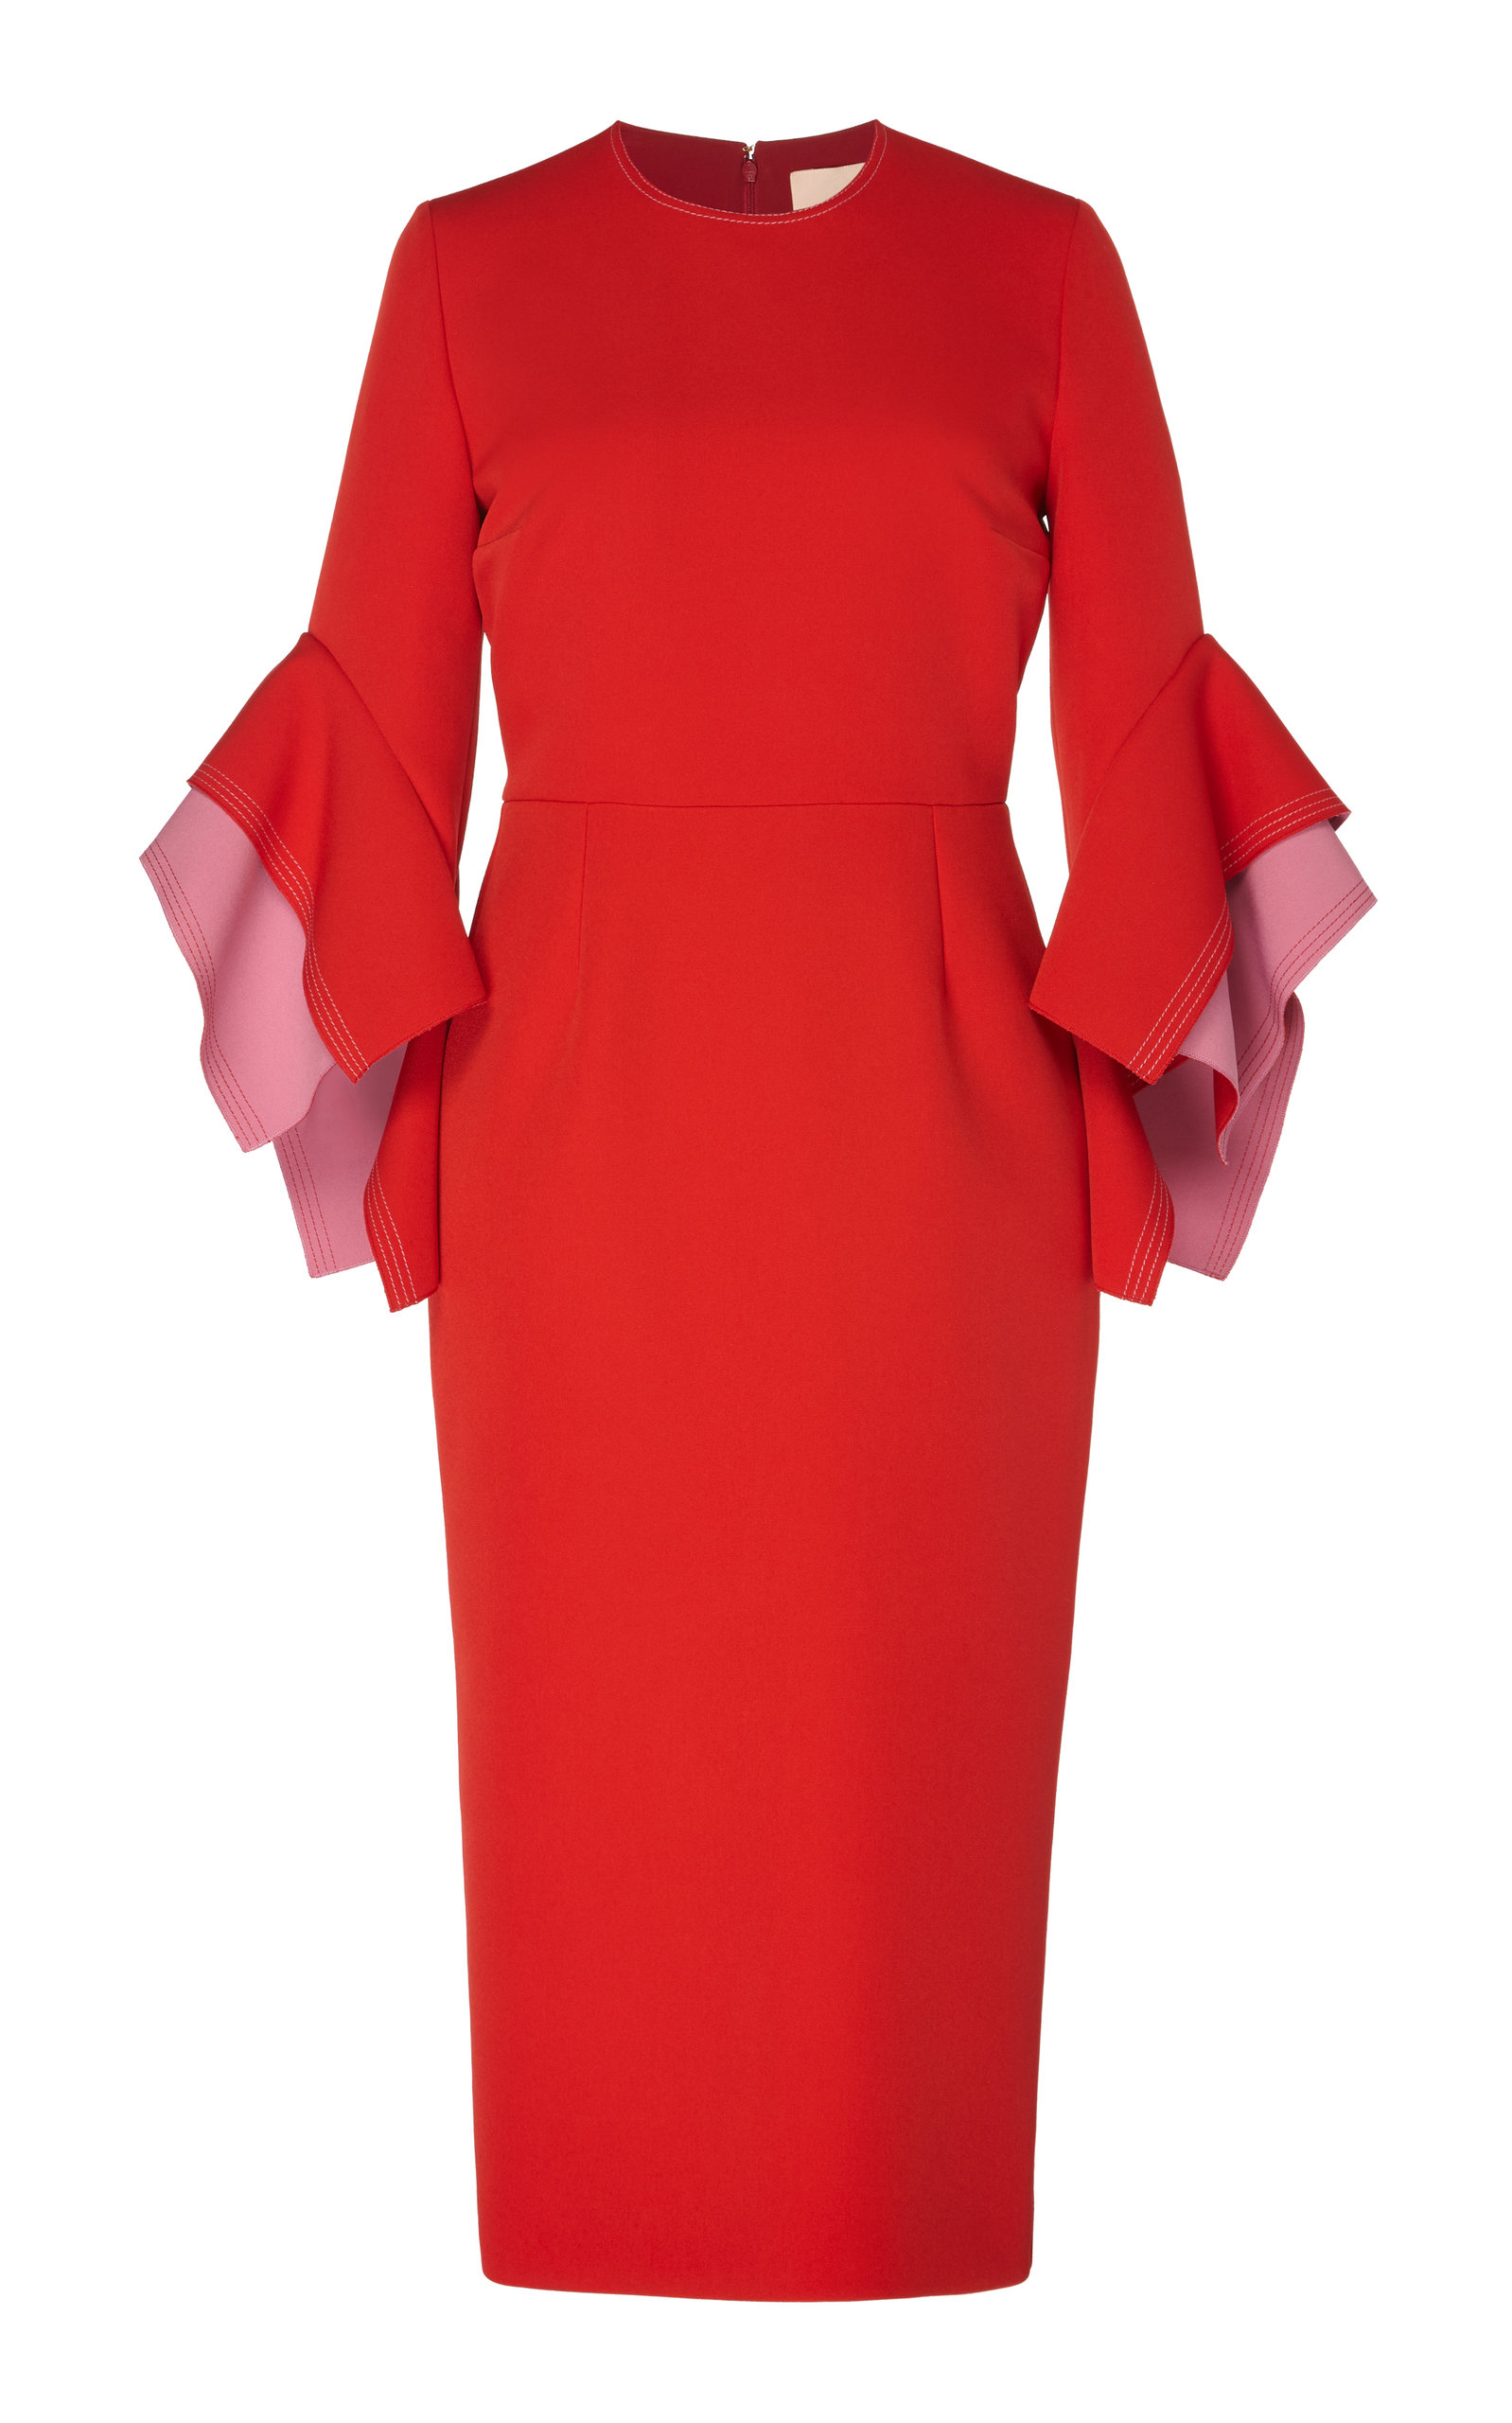 Buy ROKSANDA Ronda Two-Tone Crepe Midi Dress online, shop ROKSANDA at the best price